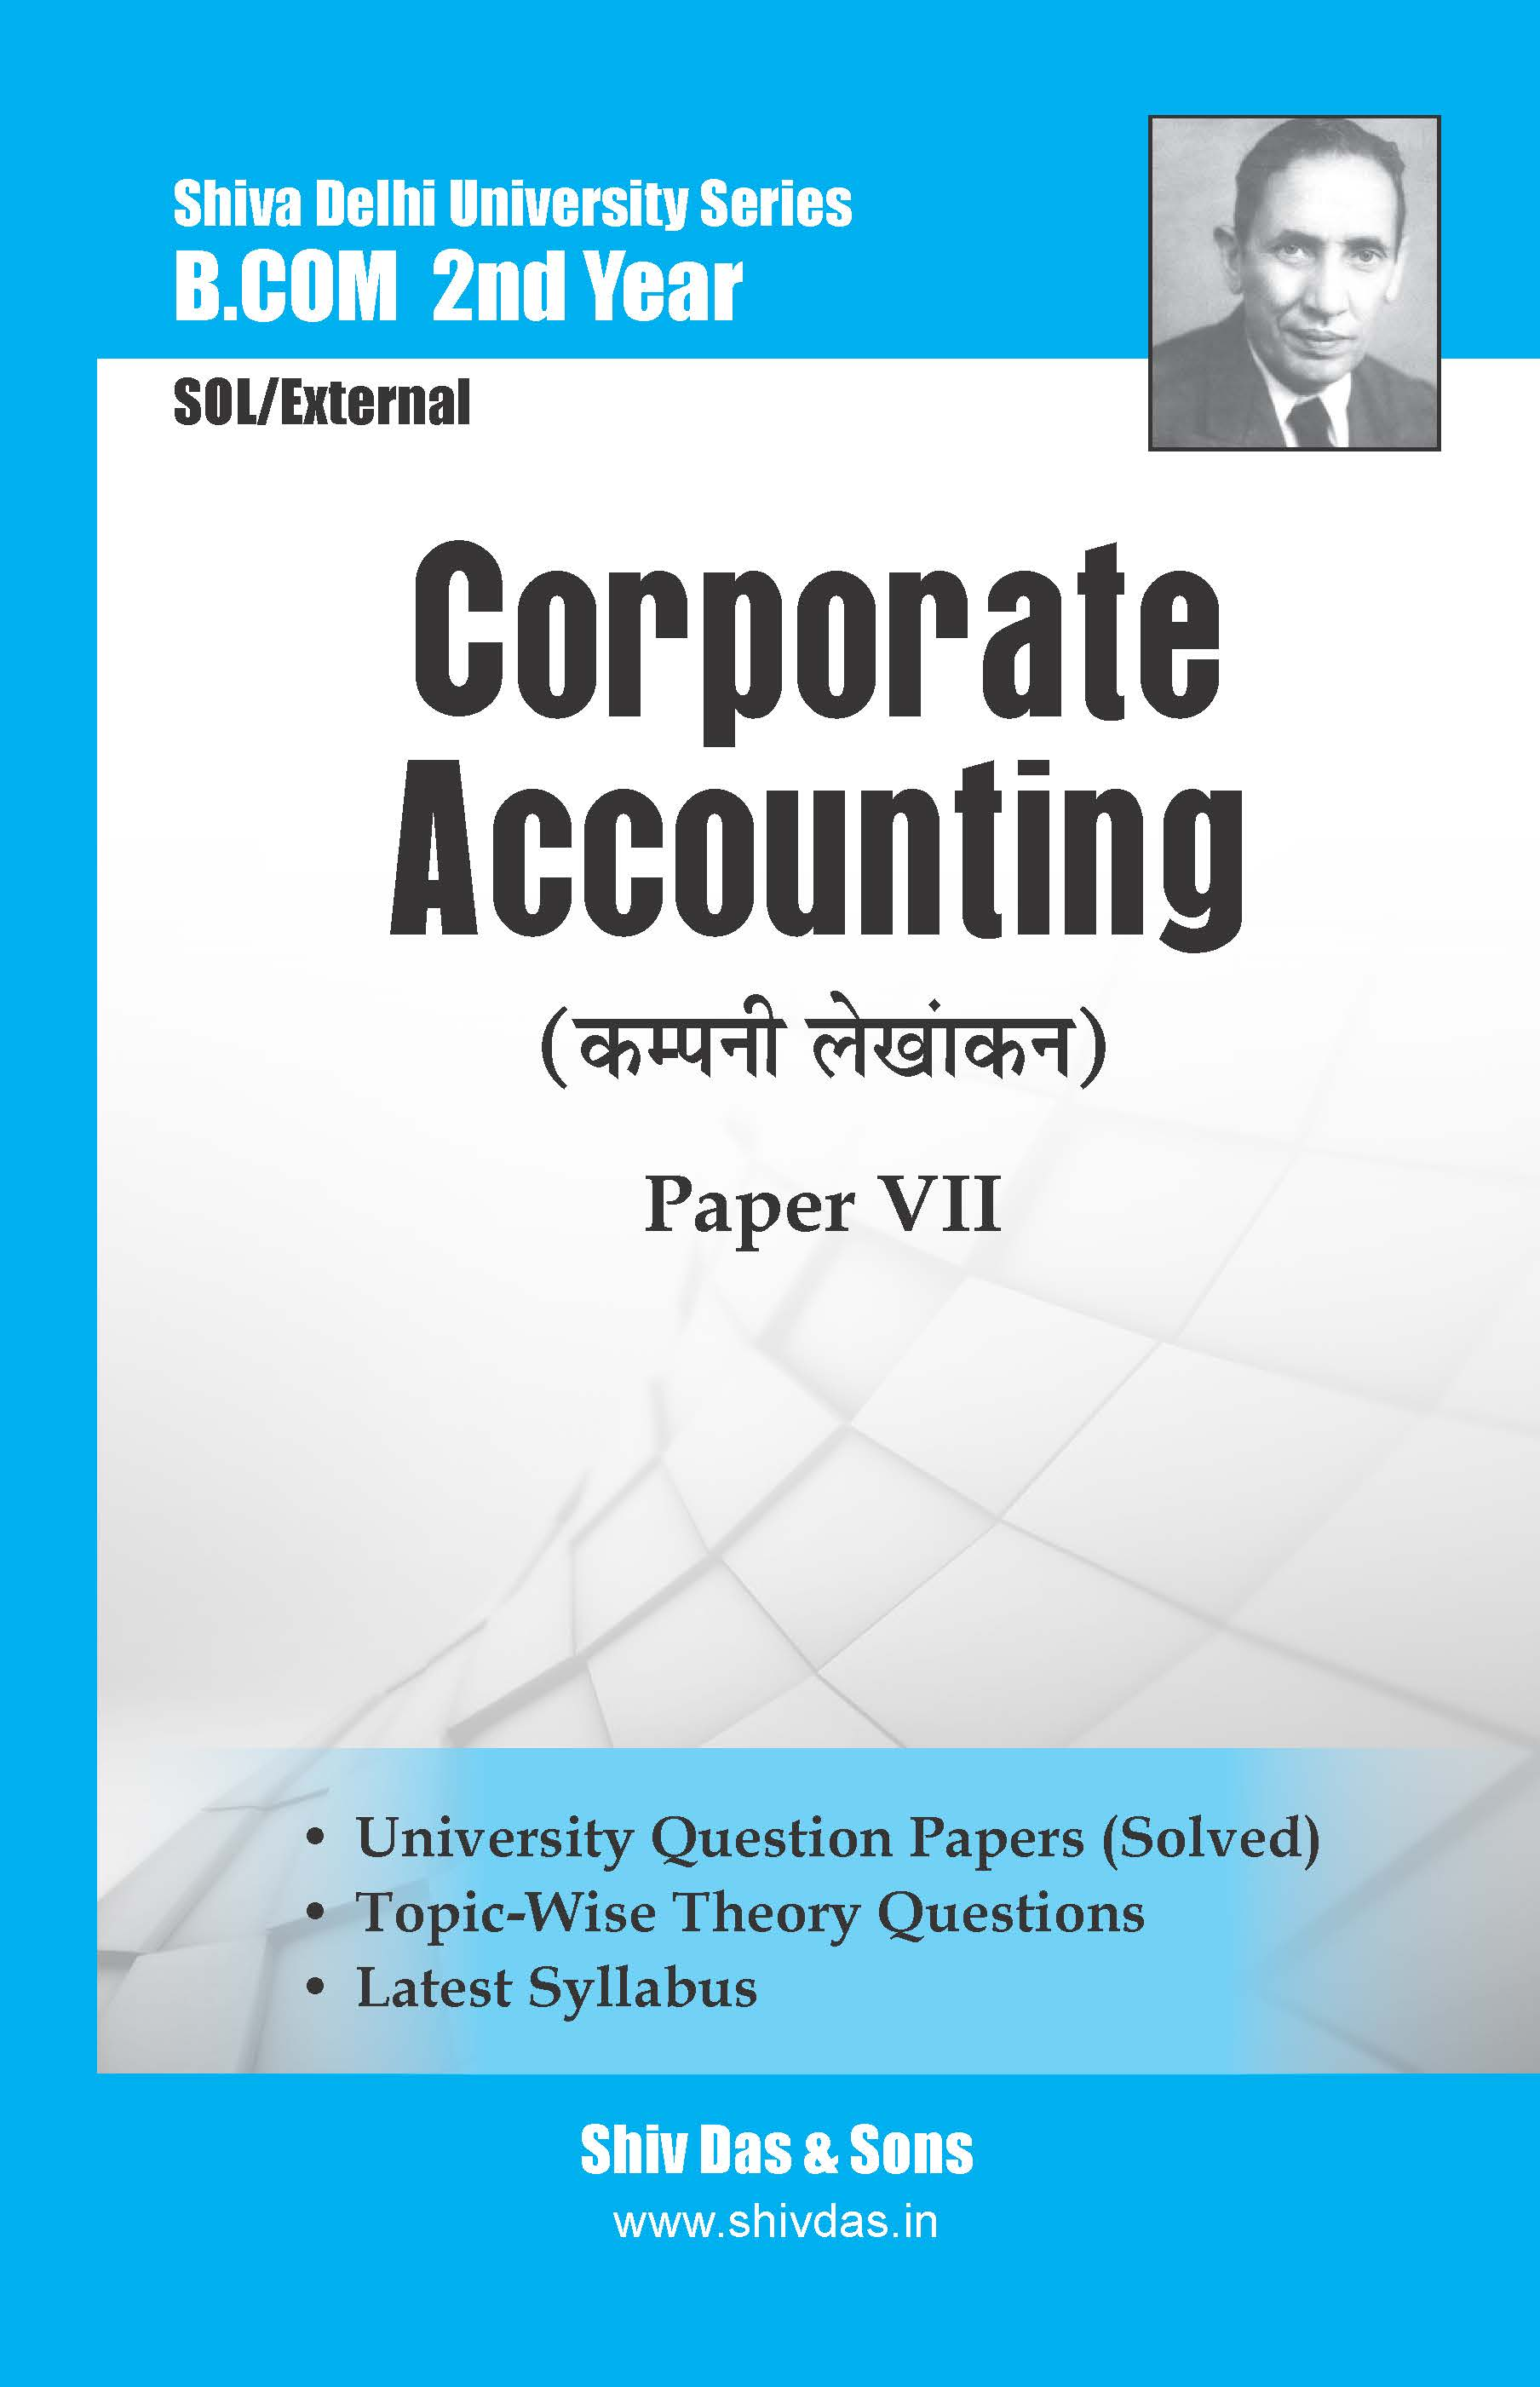 B.Com 2nd Year SOL/External Corporate Accounting (Hindi Medium) Shiv Das Delhi University Series